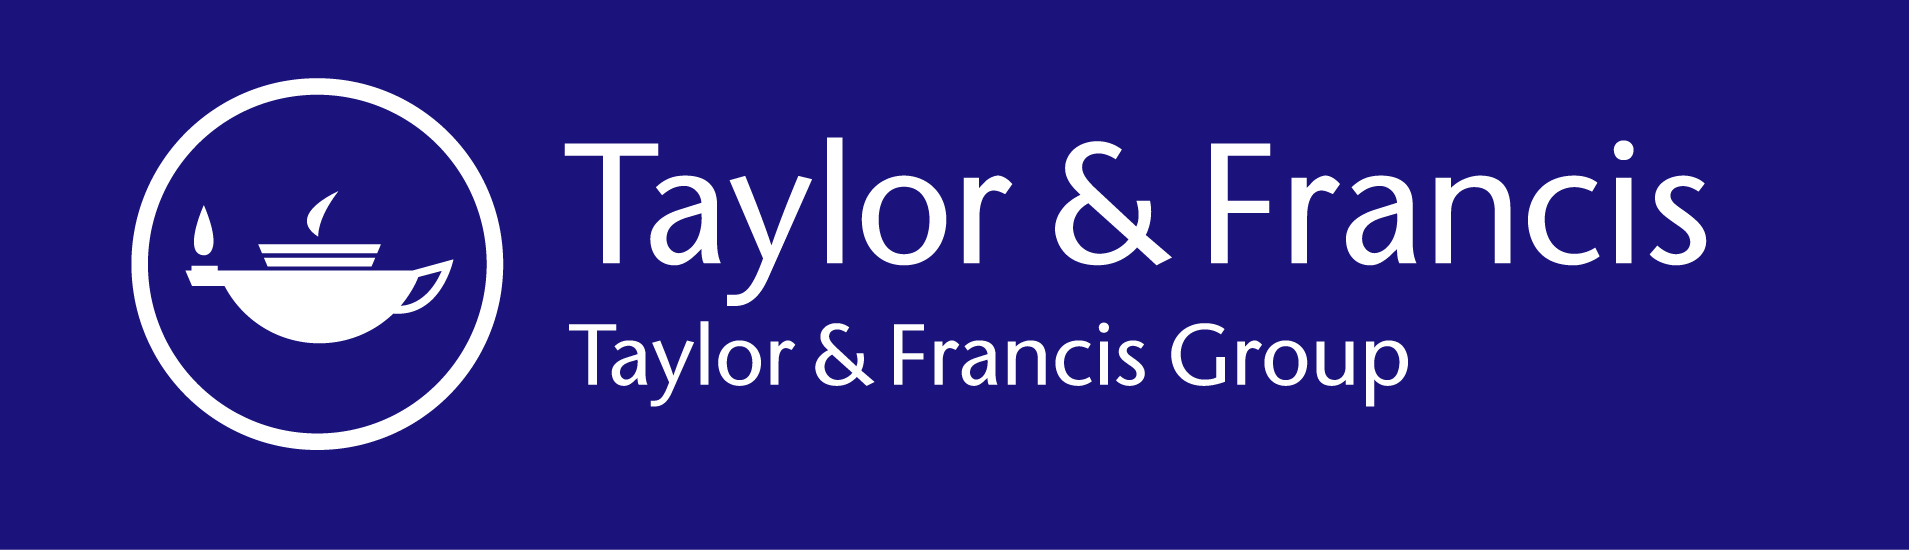 Free Access to Global Health Collection at Taylor & Francis